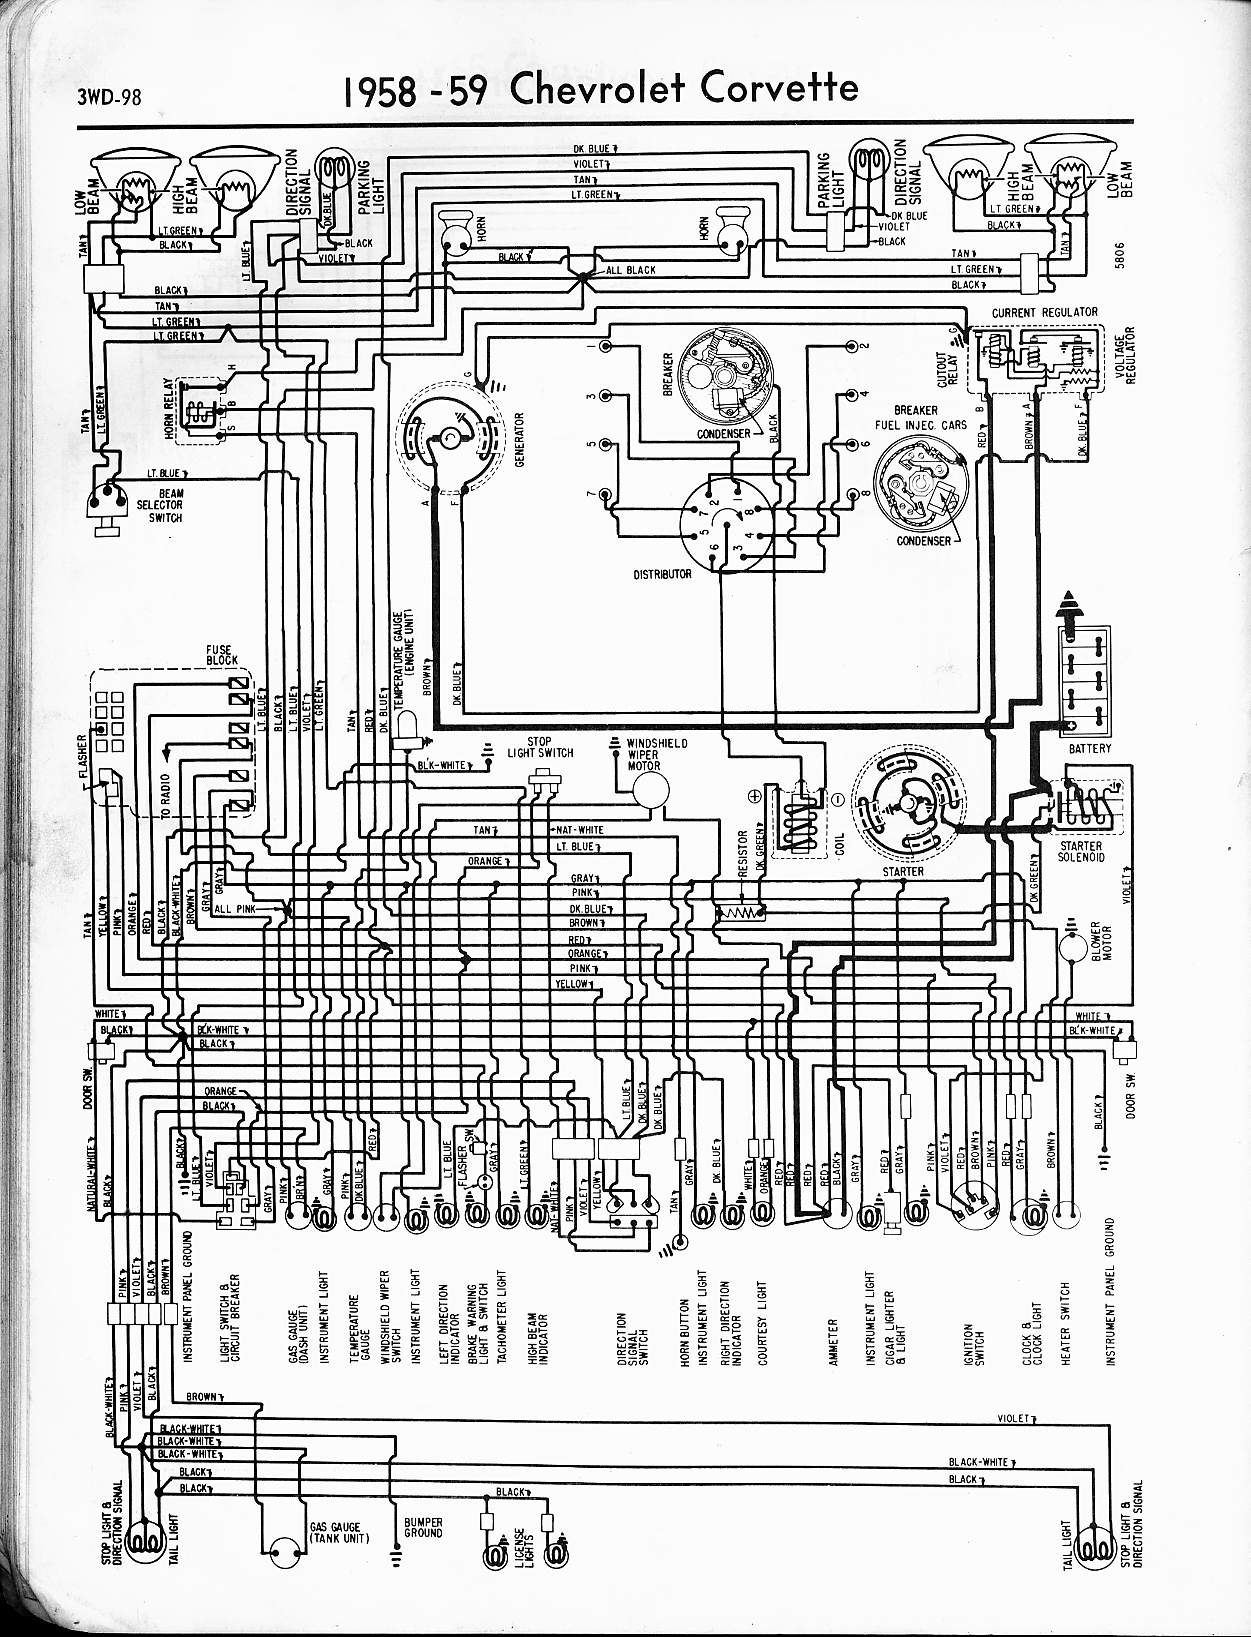 1958 Chevy Wiring Diagram 1955 Light Switch Tv Remote Control Circuit Controlcircuit 57 65 Diagrams Rh Oldcarmanualproject Com